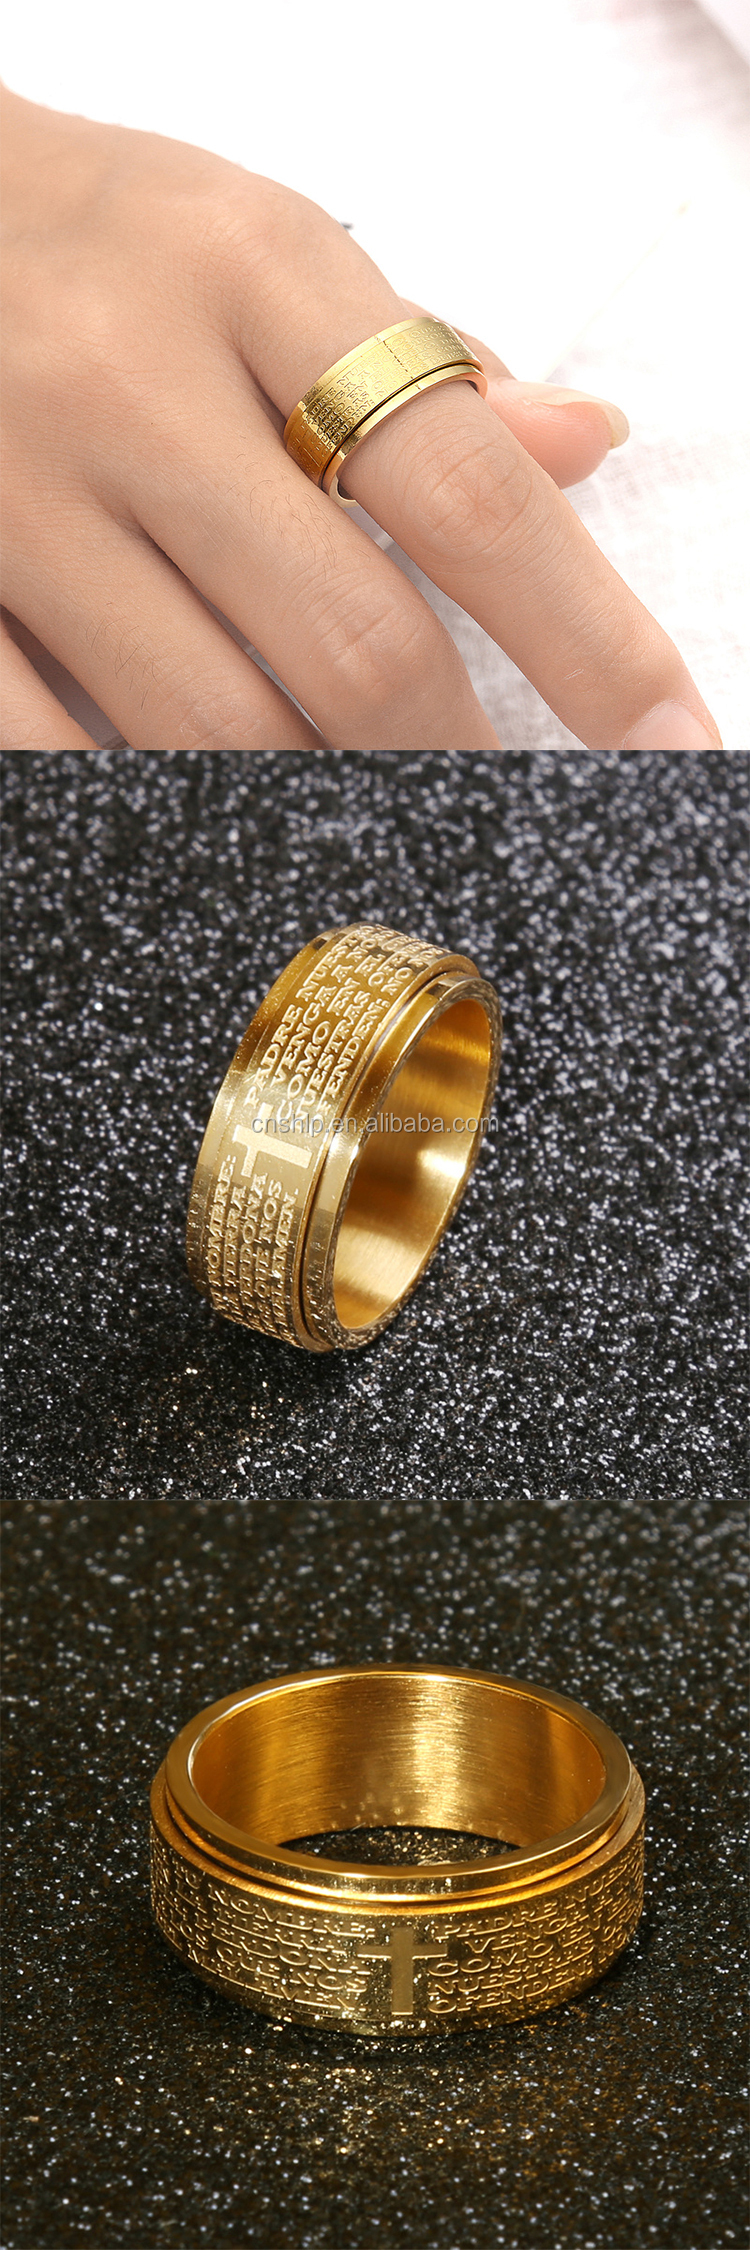 Promotional high polished 18K gold stainless steel bible logo engraved finger ring